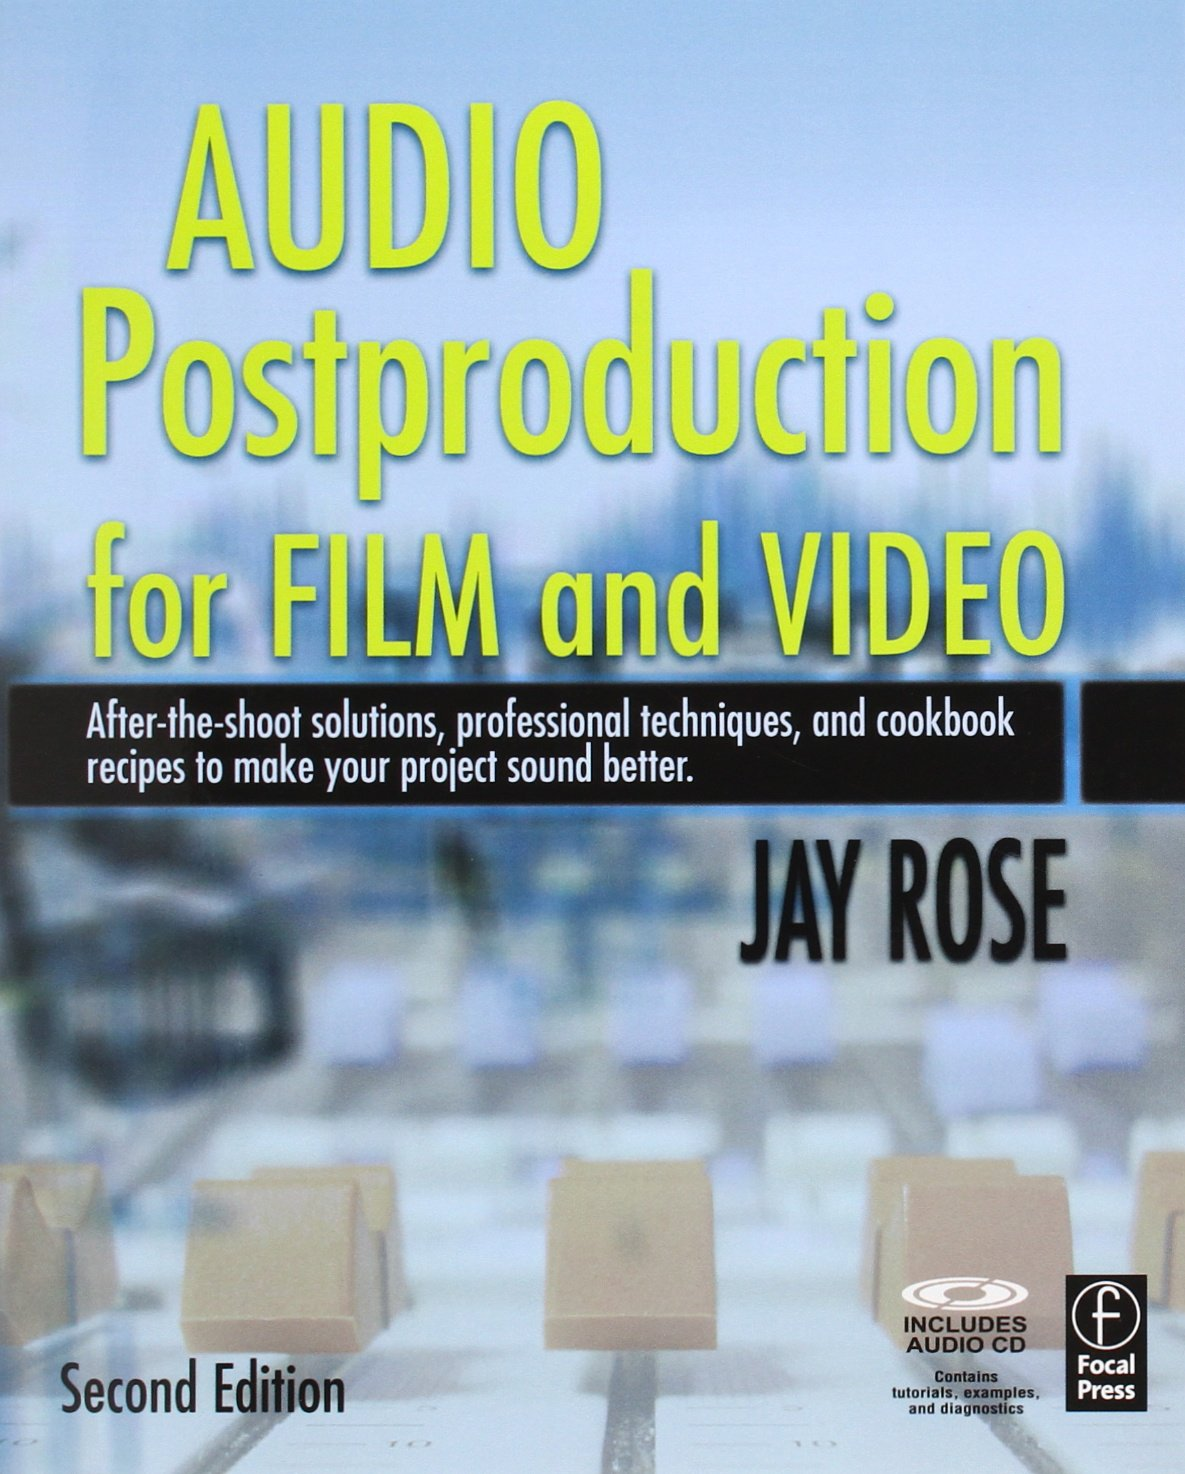 Audio Postproduction for Film and Video (DV Expert)